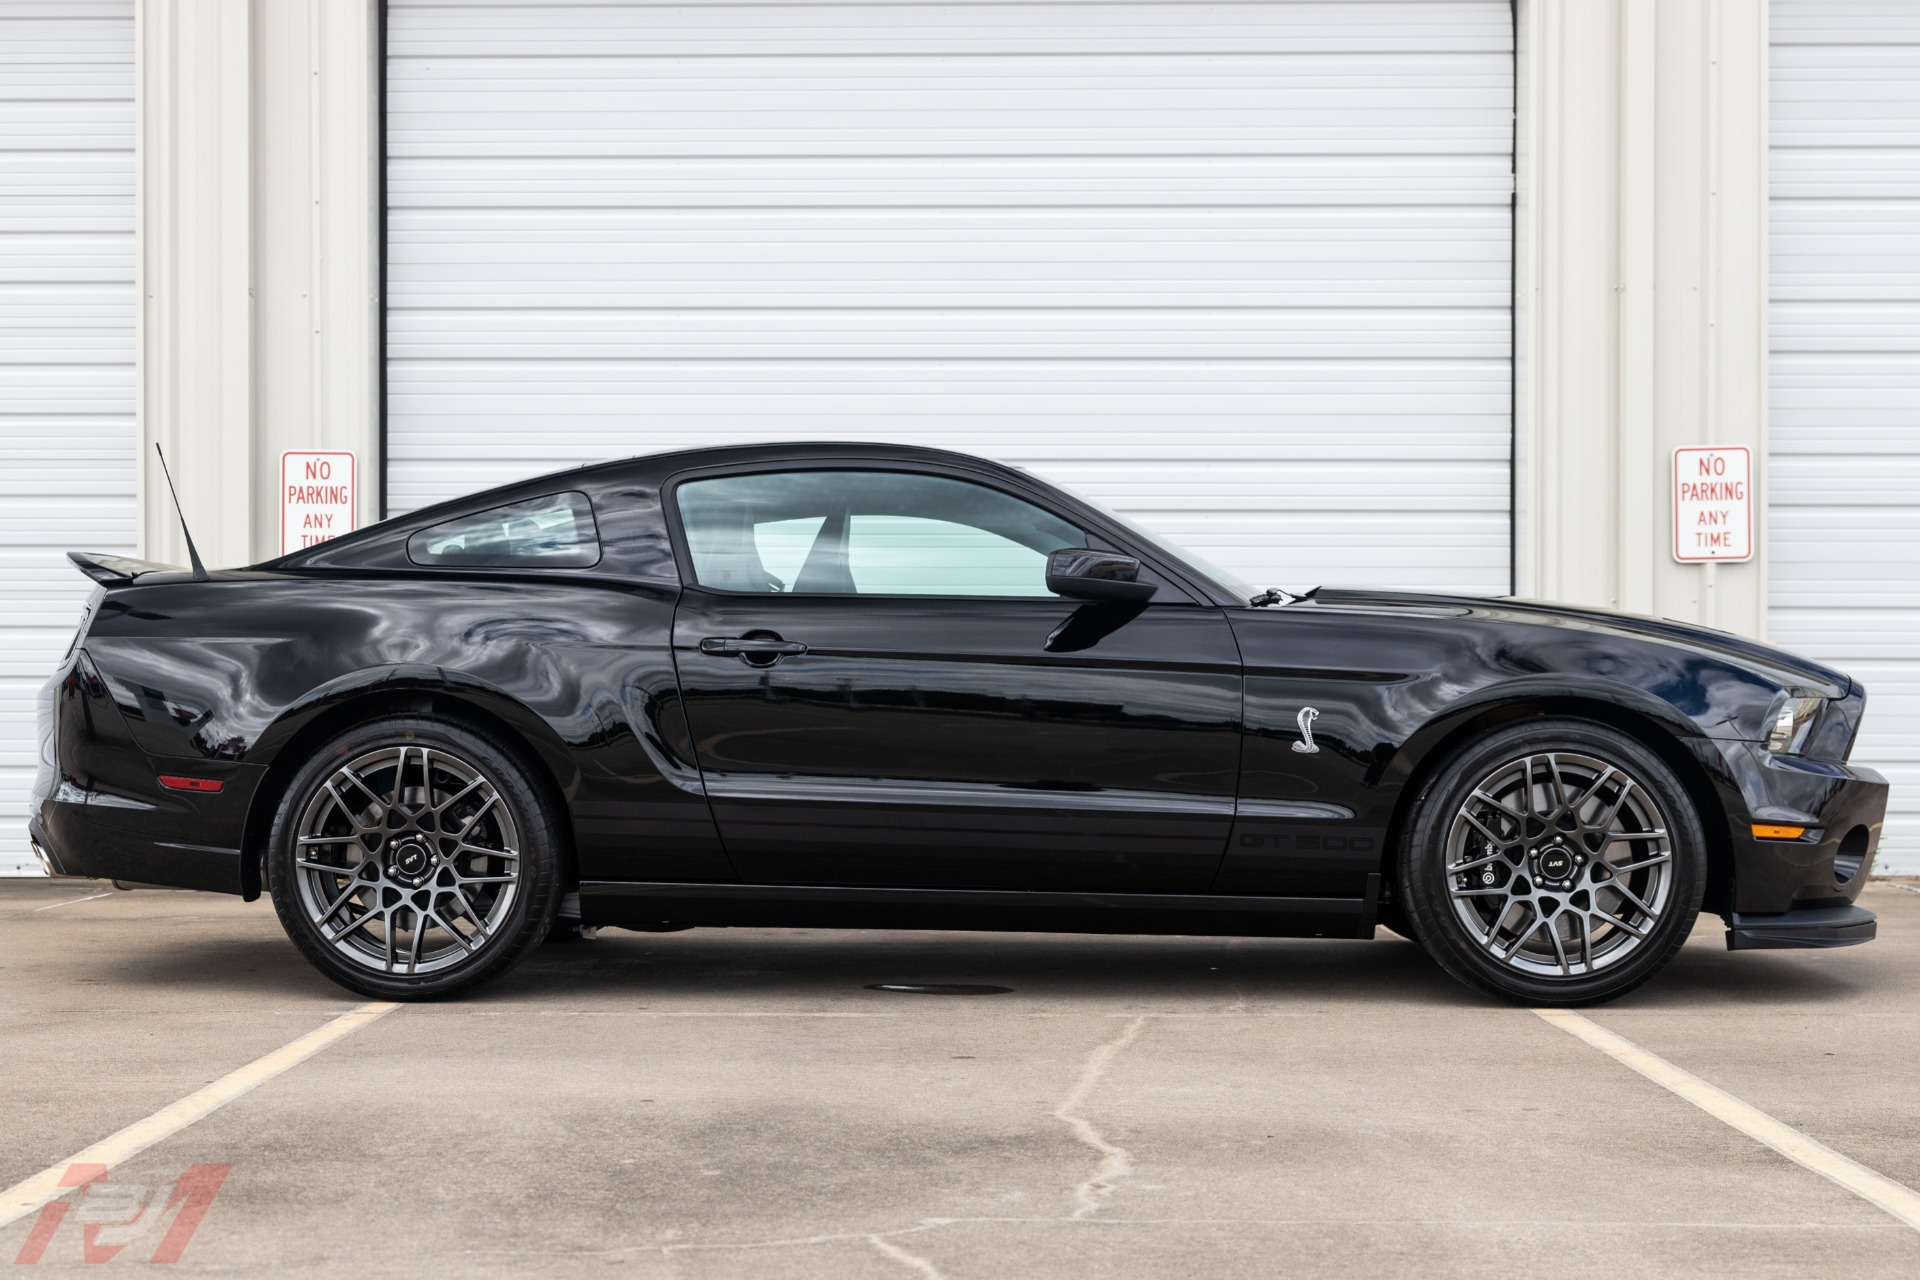 Used-2013-Ford-Mustang-Shelby-GT500